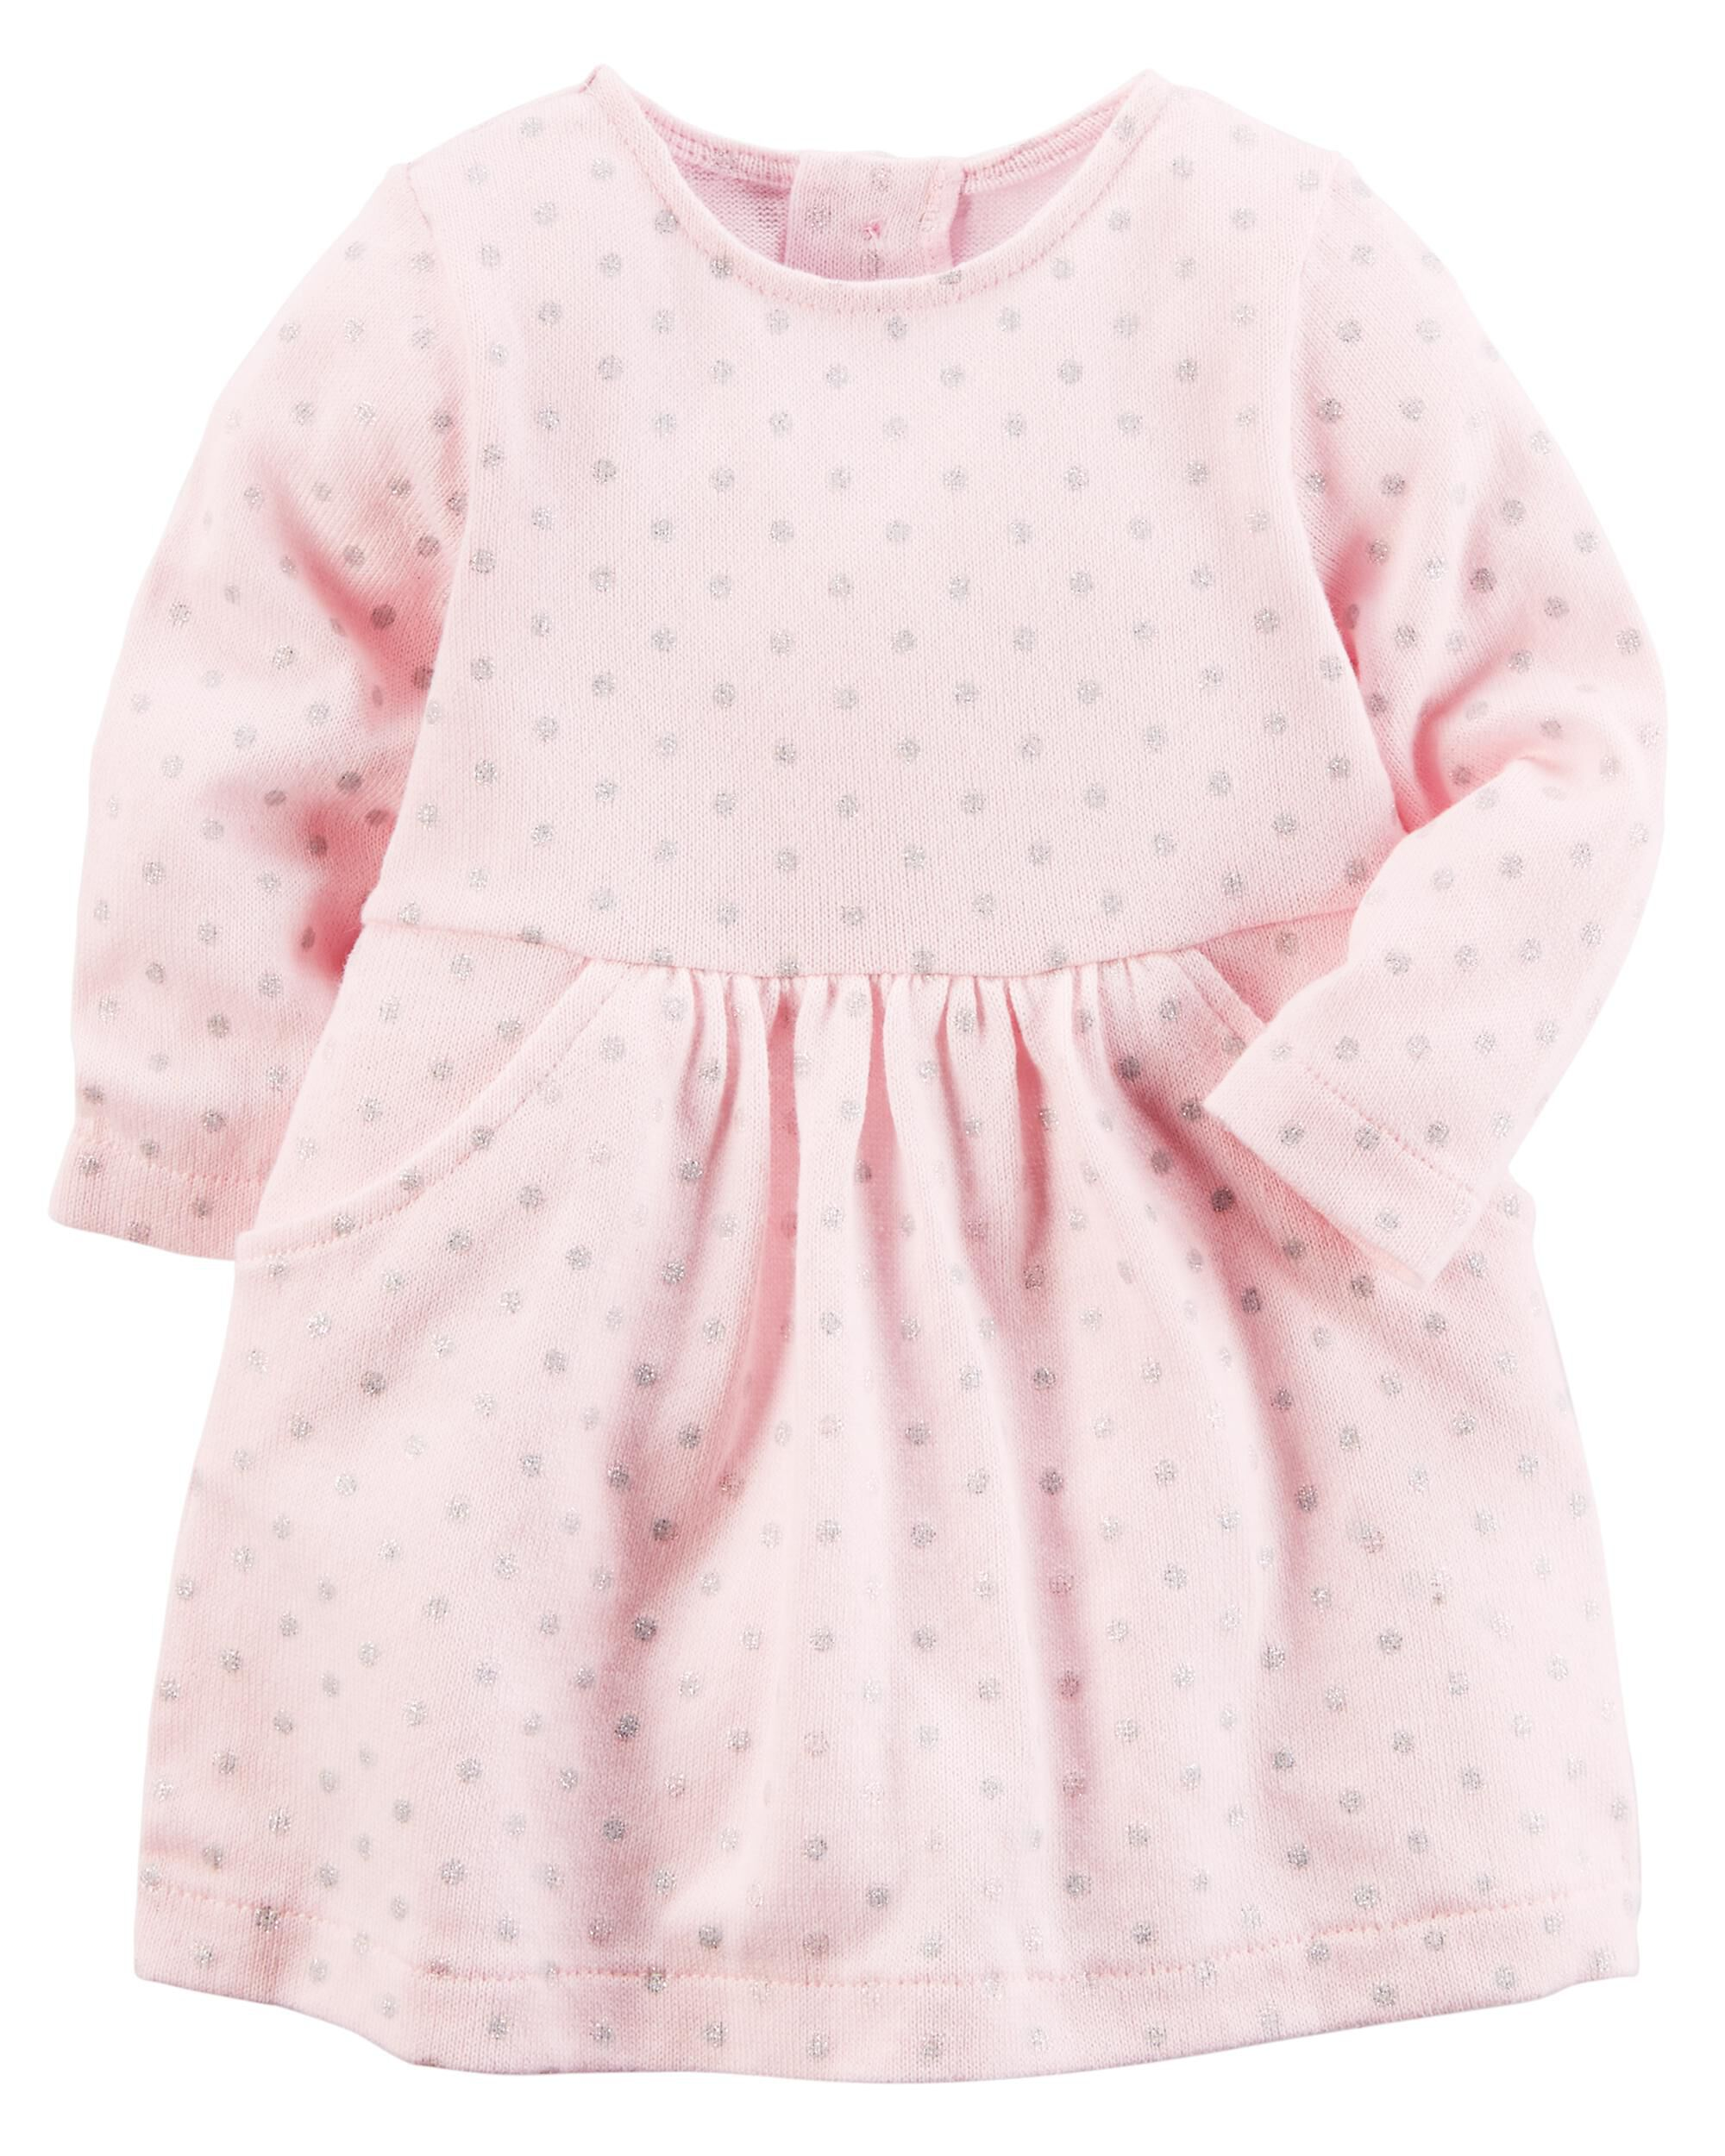 Baby Girl Polka Dot Sweater Dress